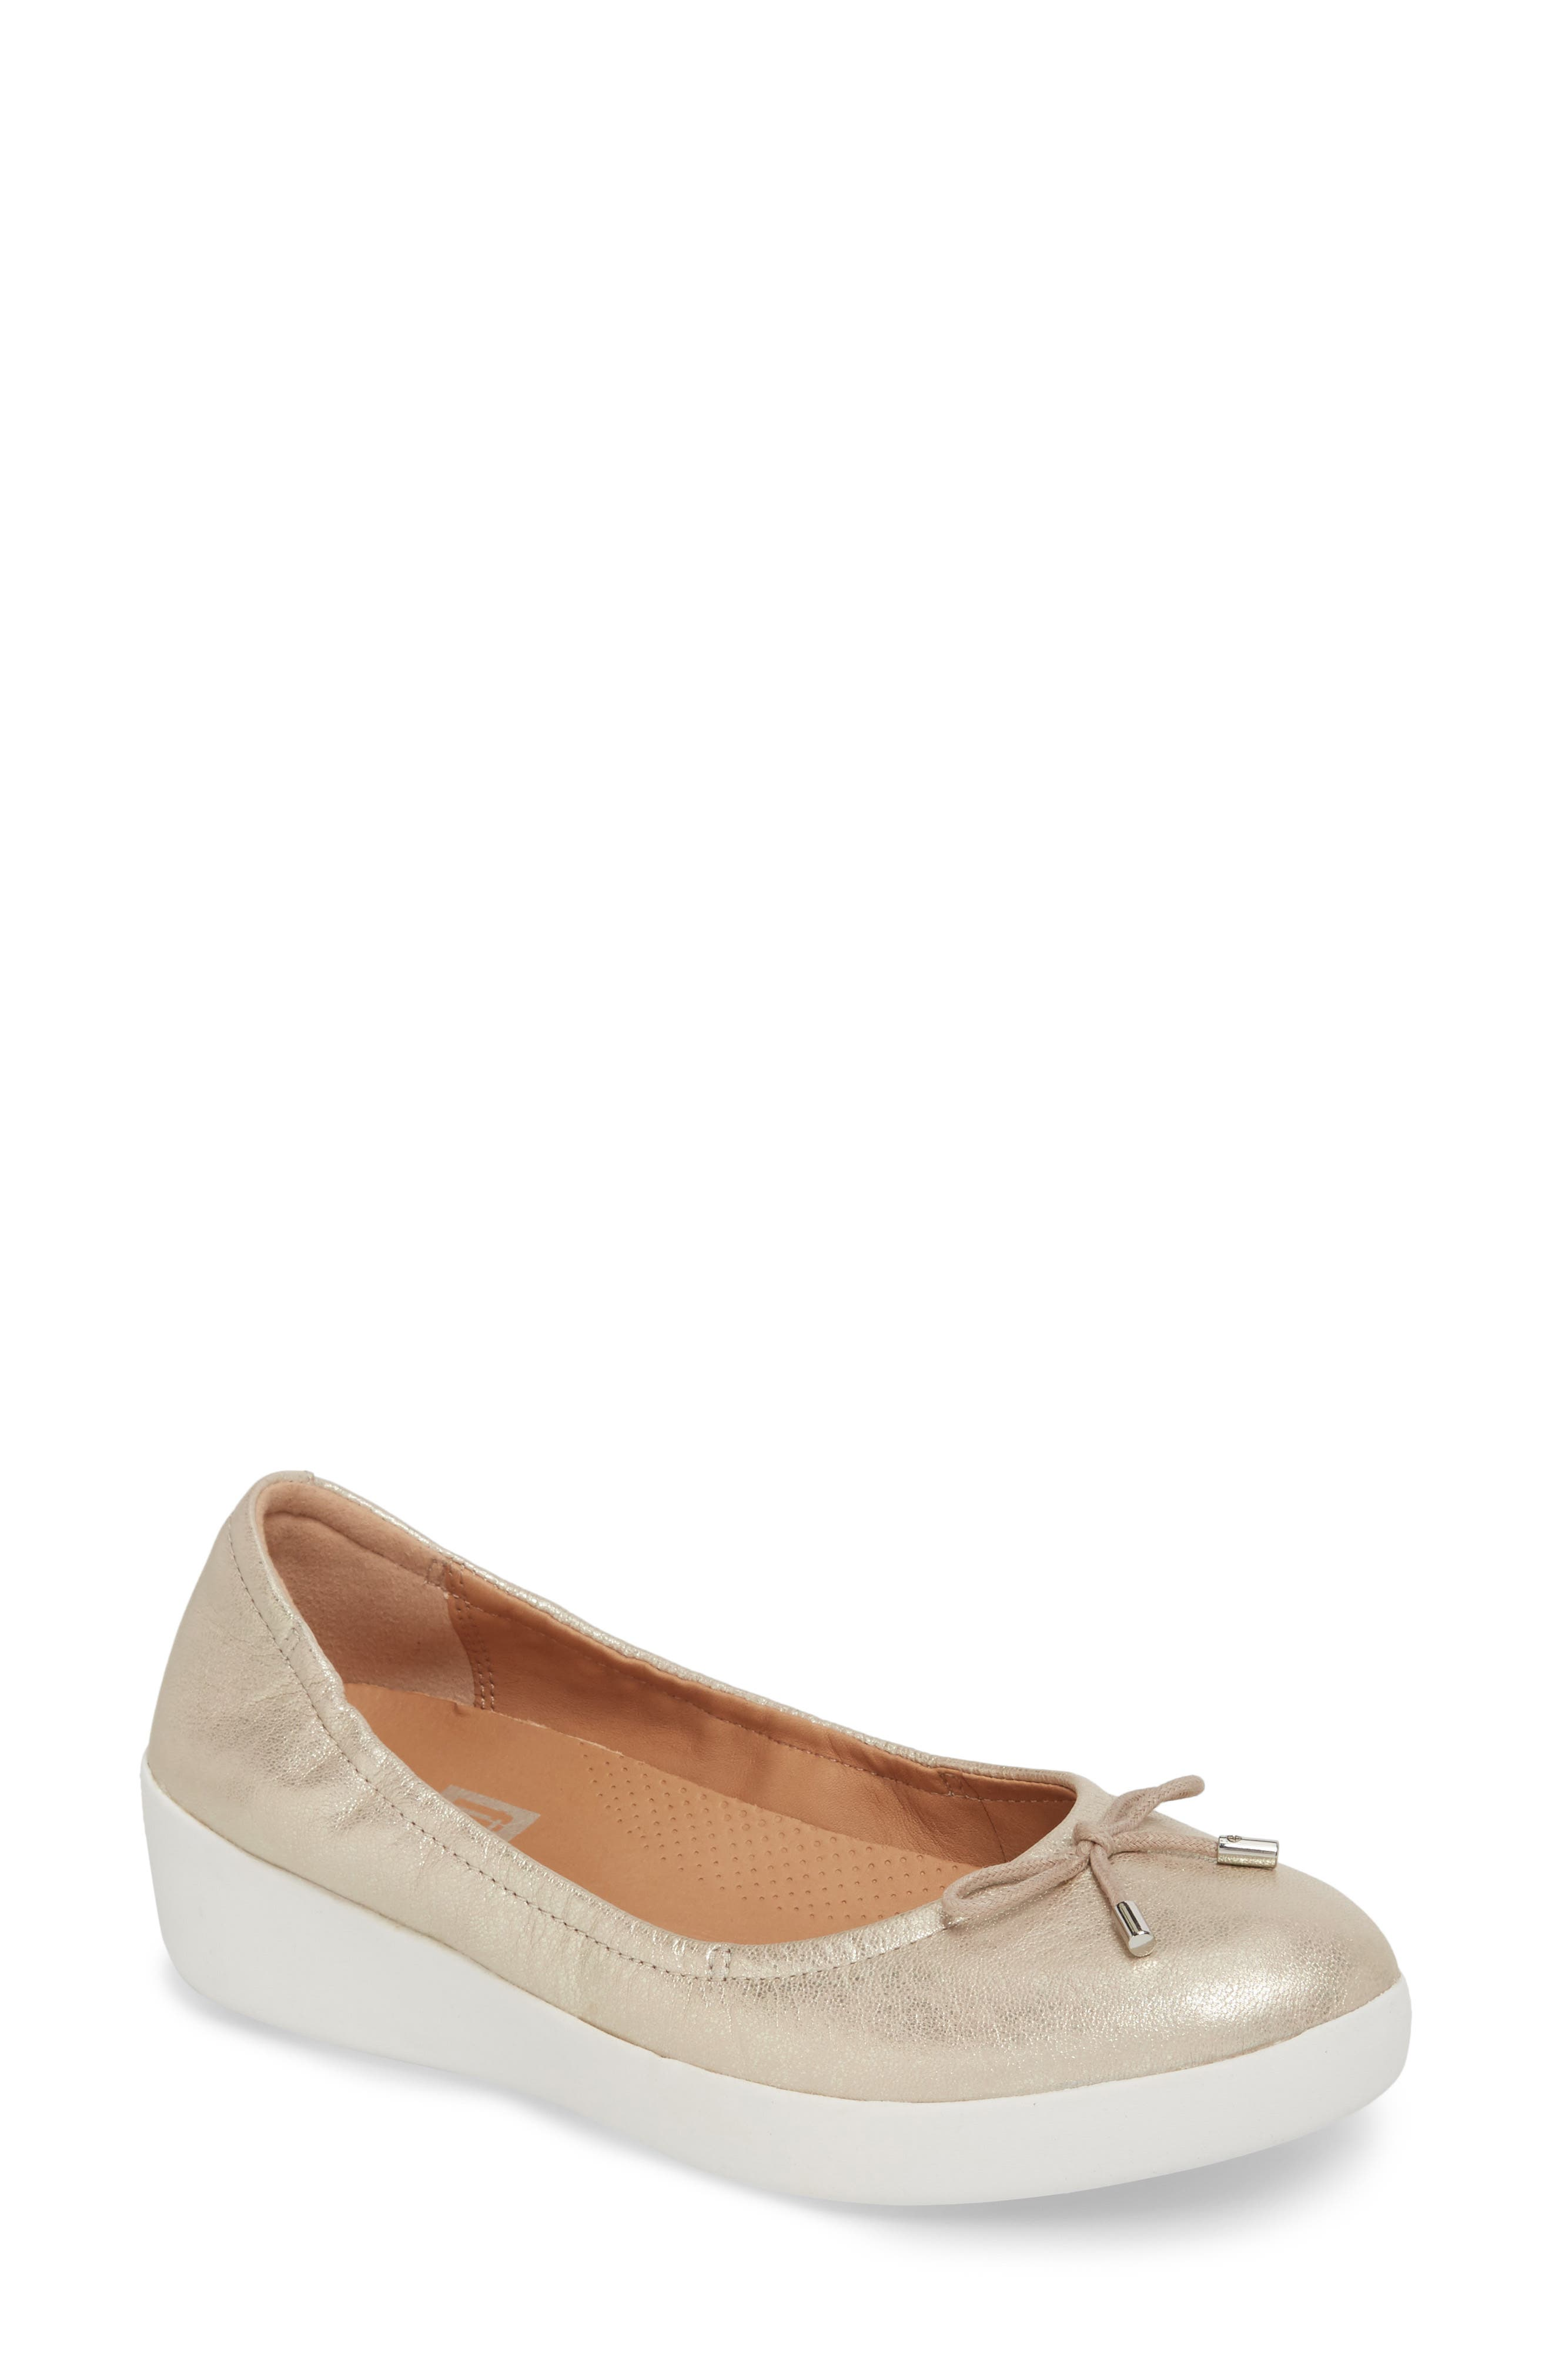 Superbendy Ballerina Flat,                         Main,                         color, METALLIC SILVER LEATHER